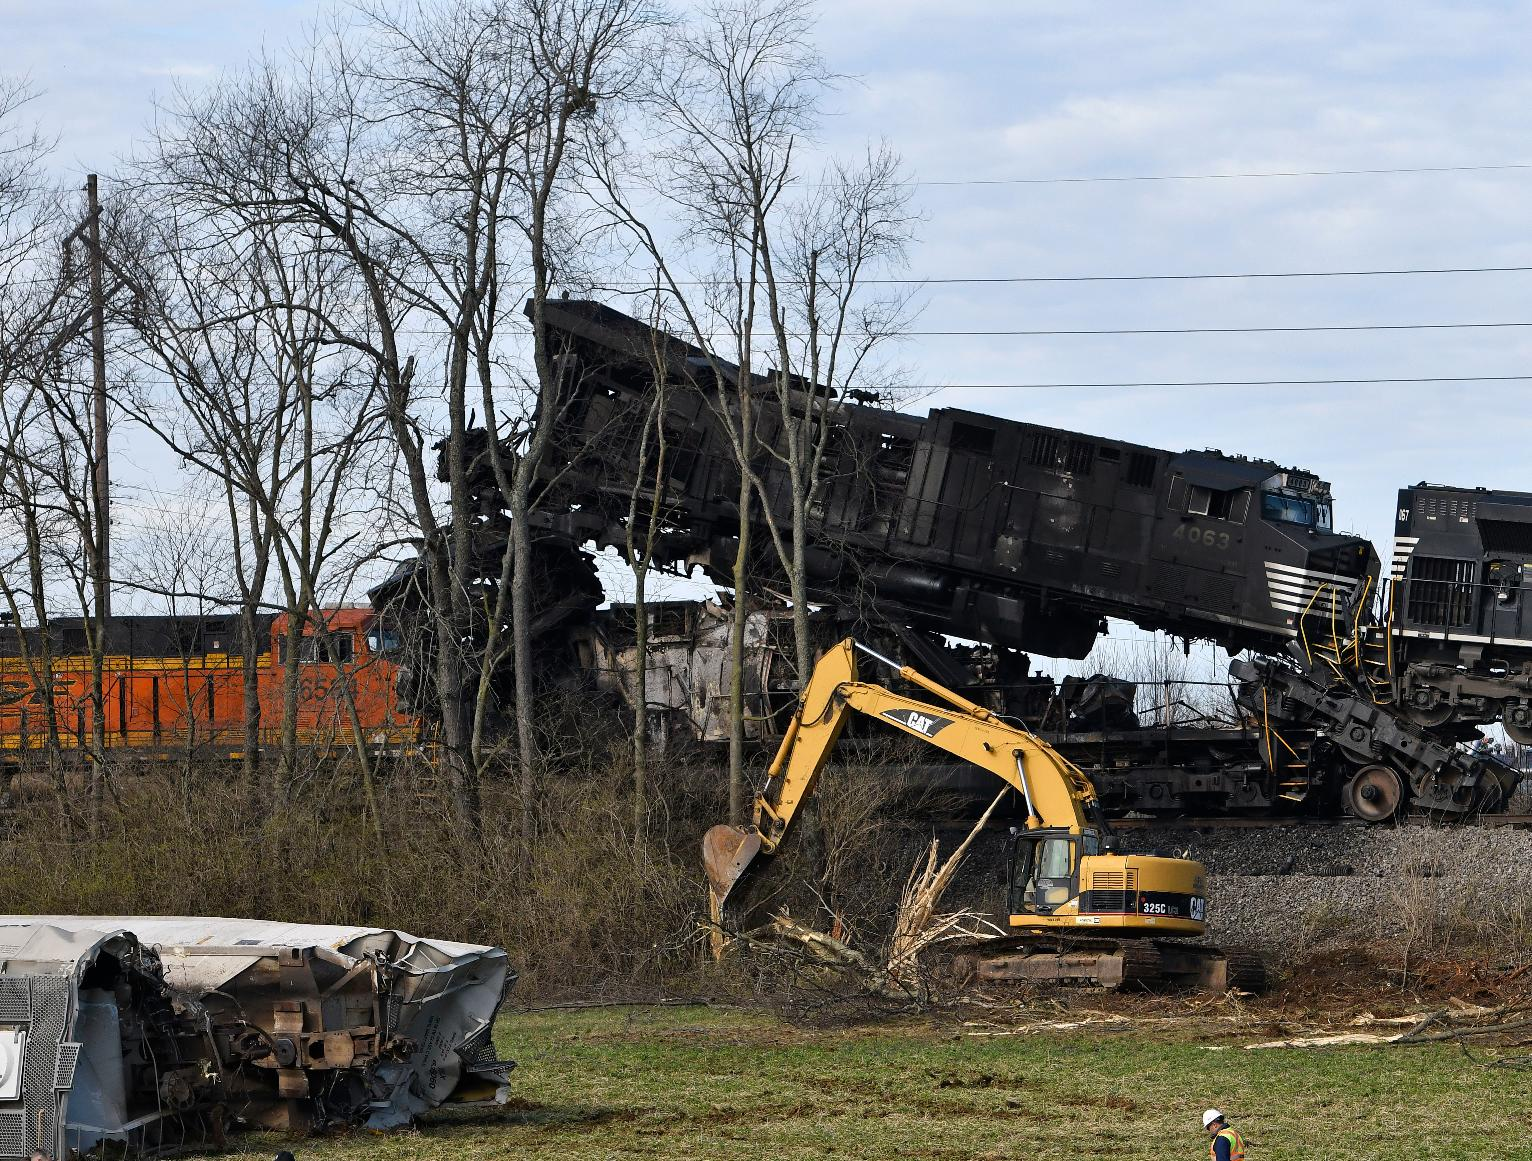 The Latest Norfolk Southern Clearing Derailed Freight